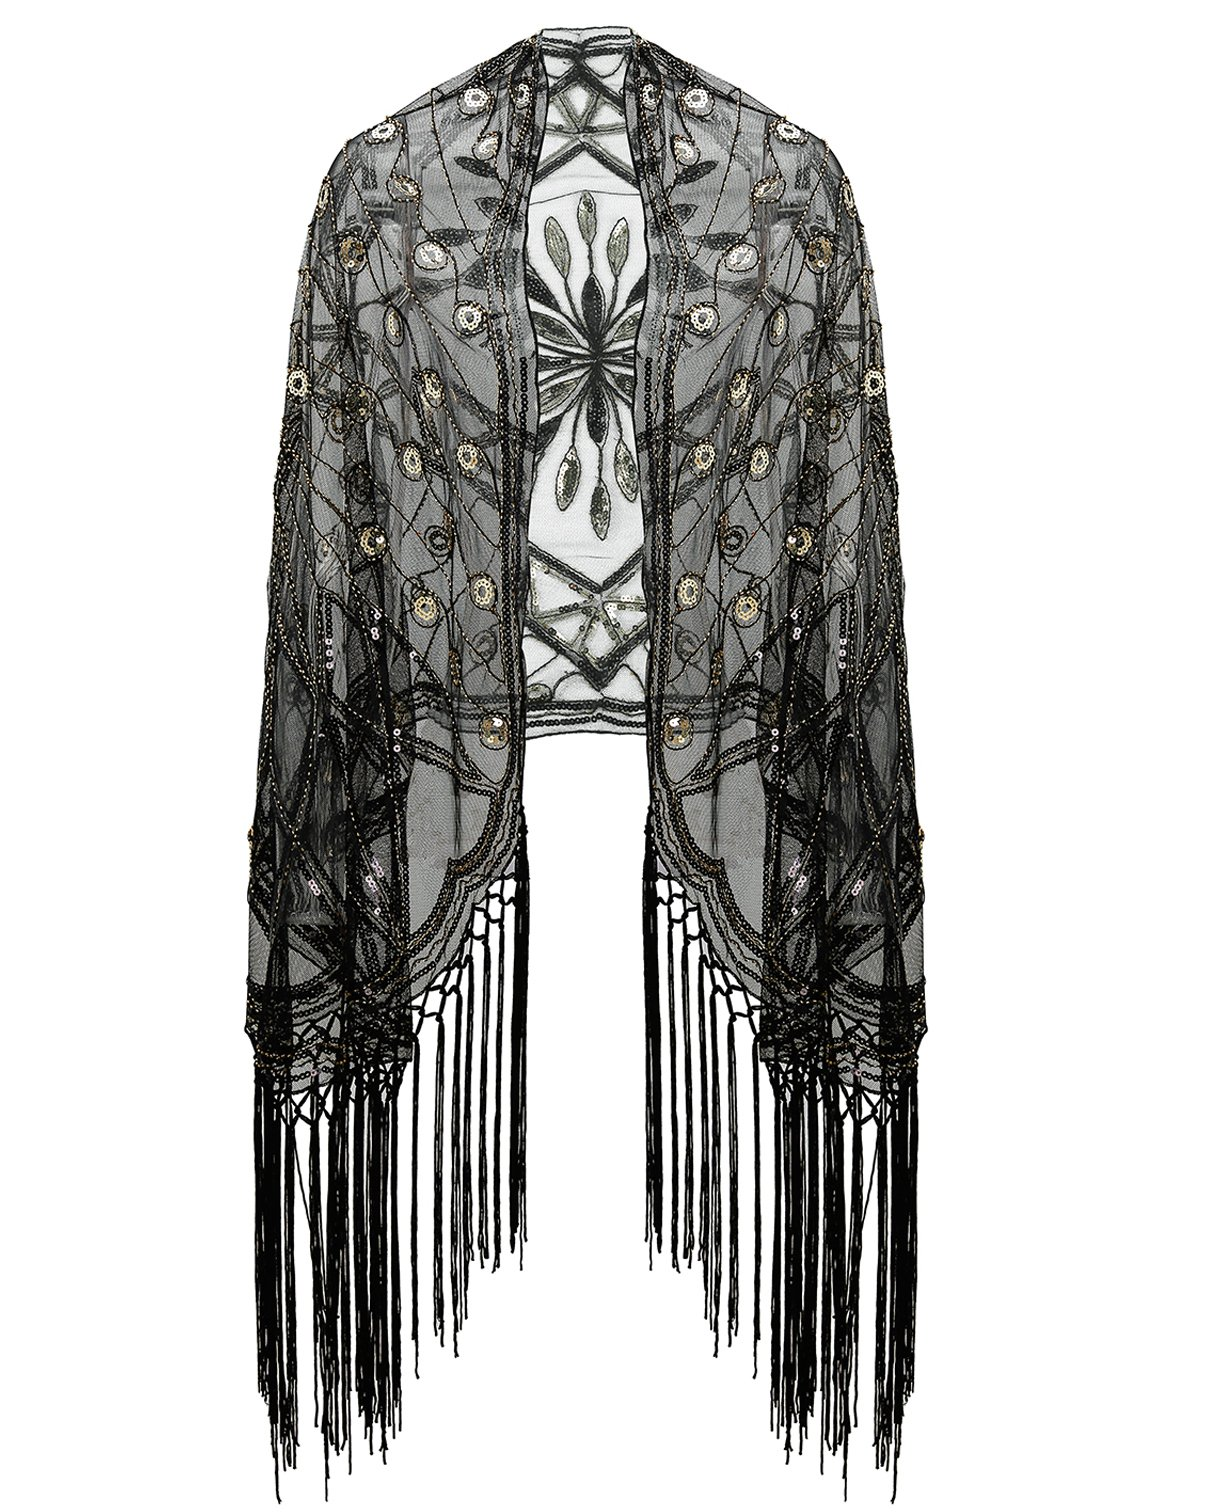 Metme Women's 1920s Scarf Wraps Sequin Deco Fringed Wedding Cape Evening Shawl Vintage Prom by Metme